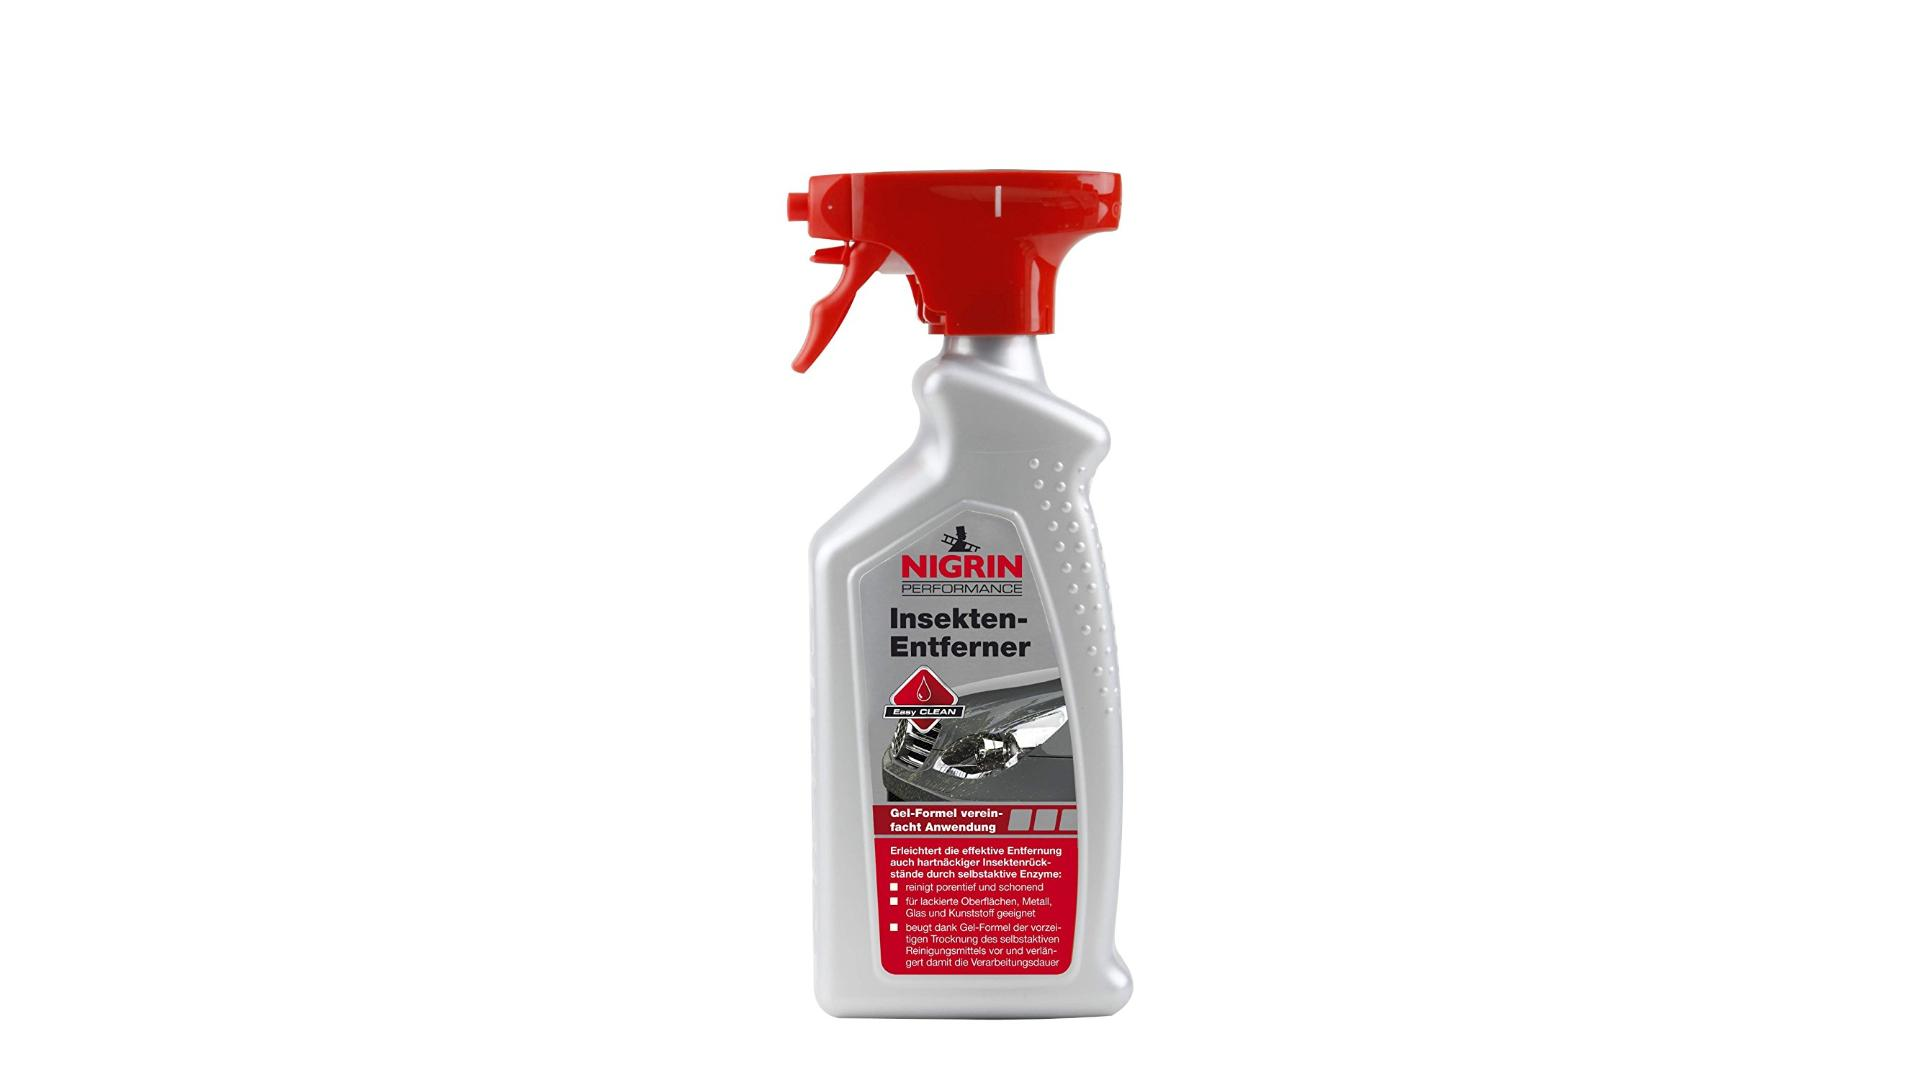 NIGRIN Insect Remover 500ml